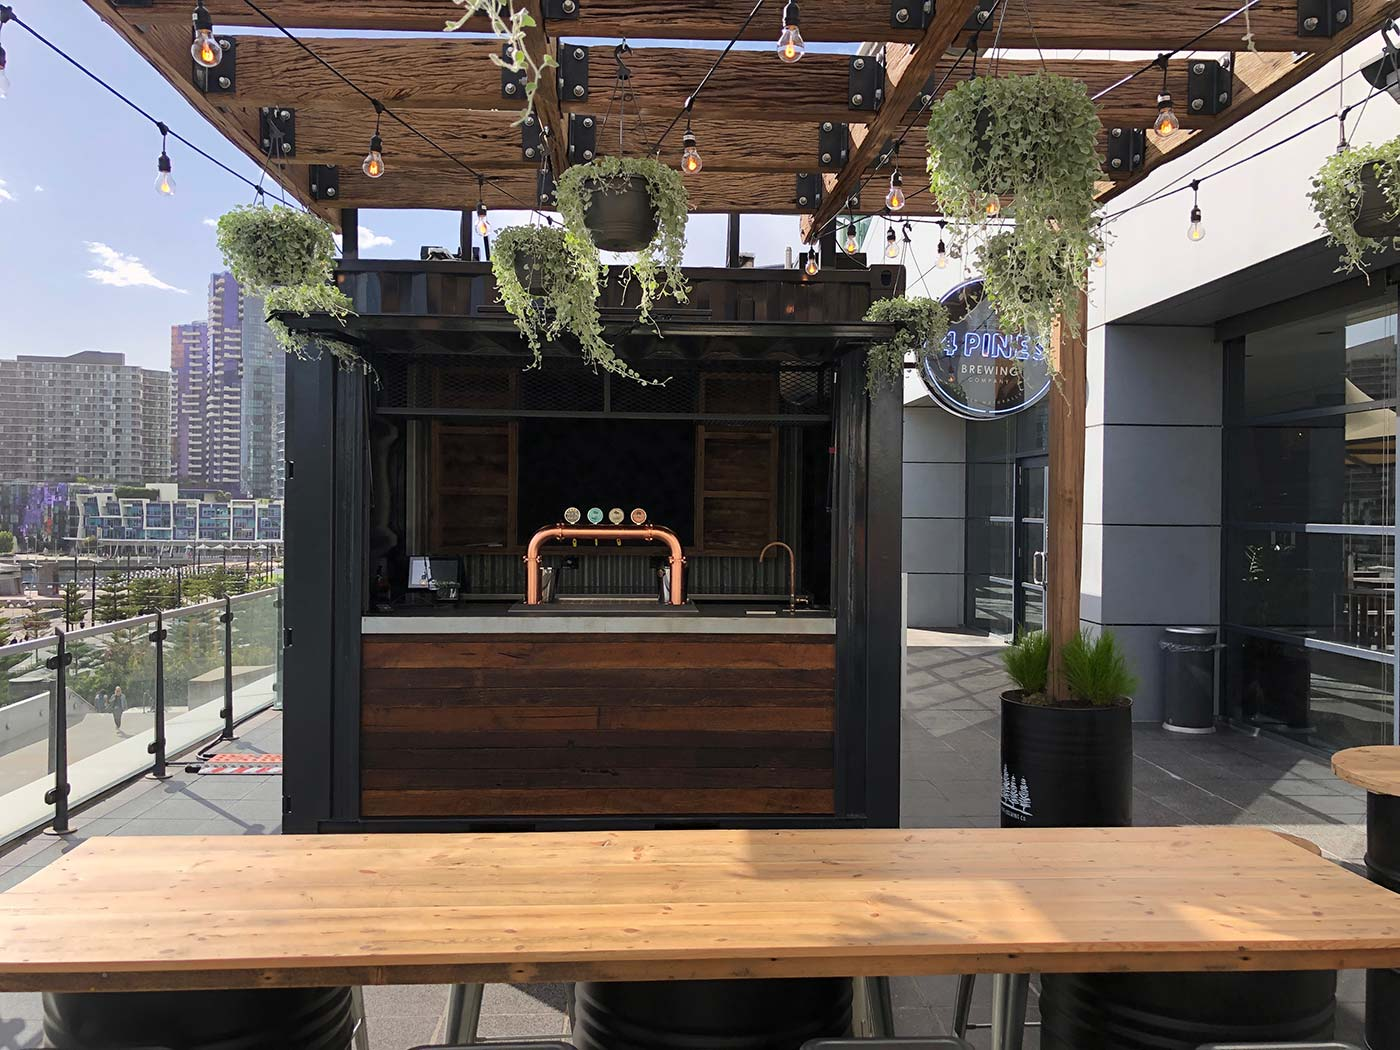 4-Pines-10ft-Shipping-Container-Bar-Conversion-4093